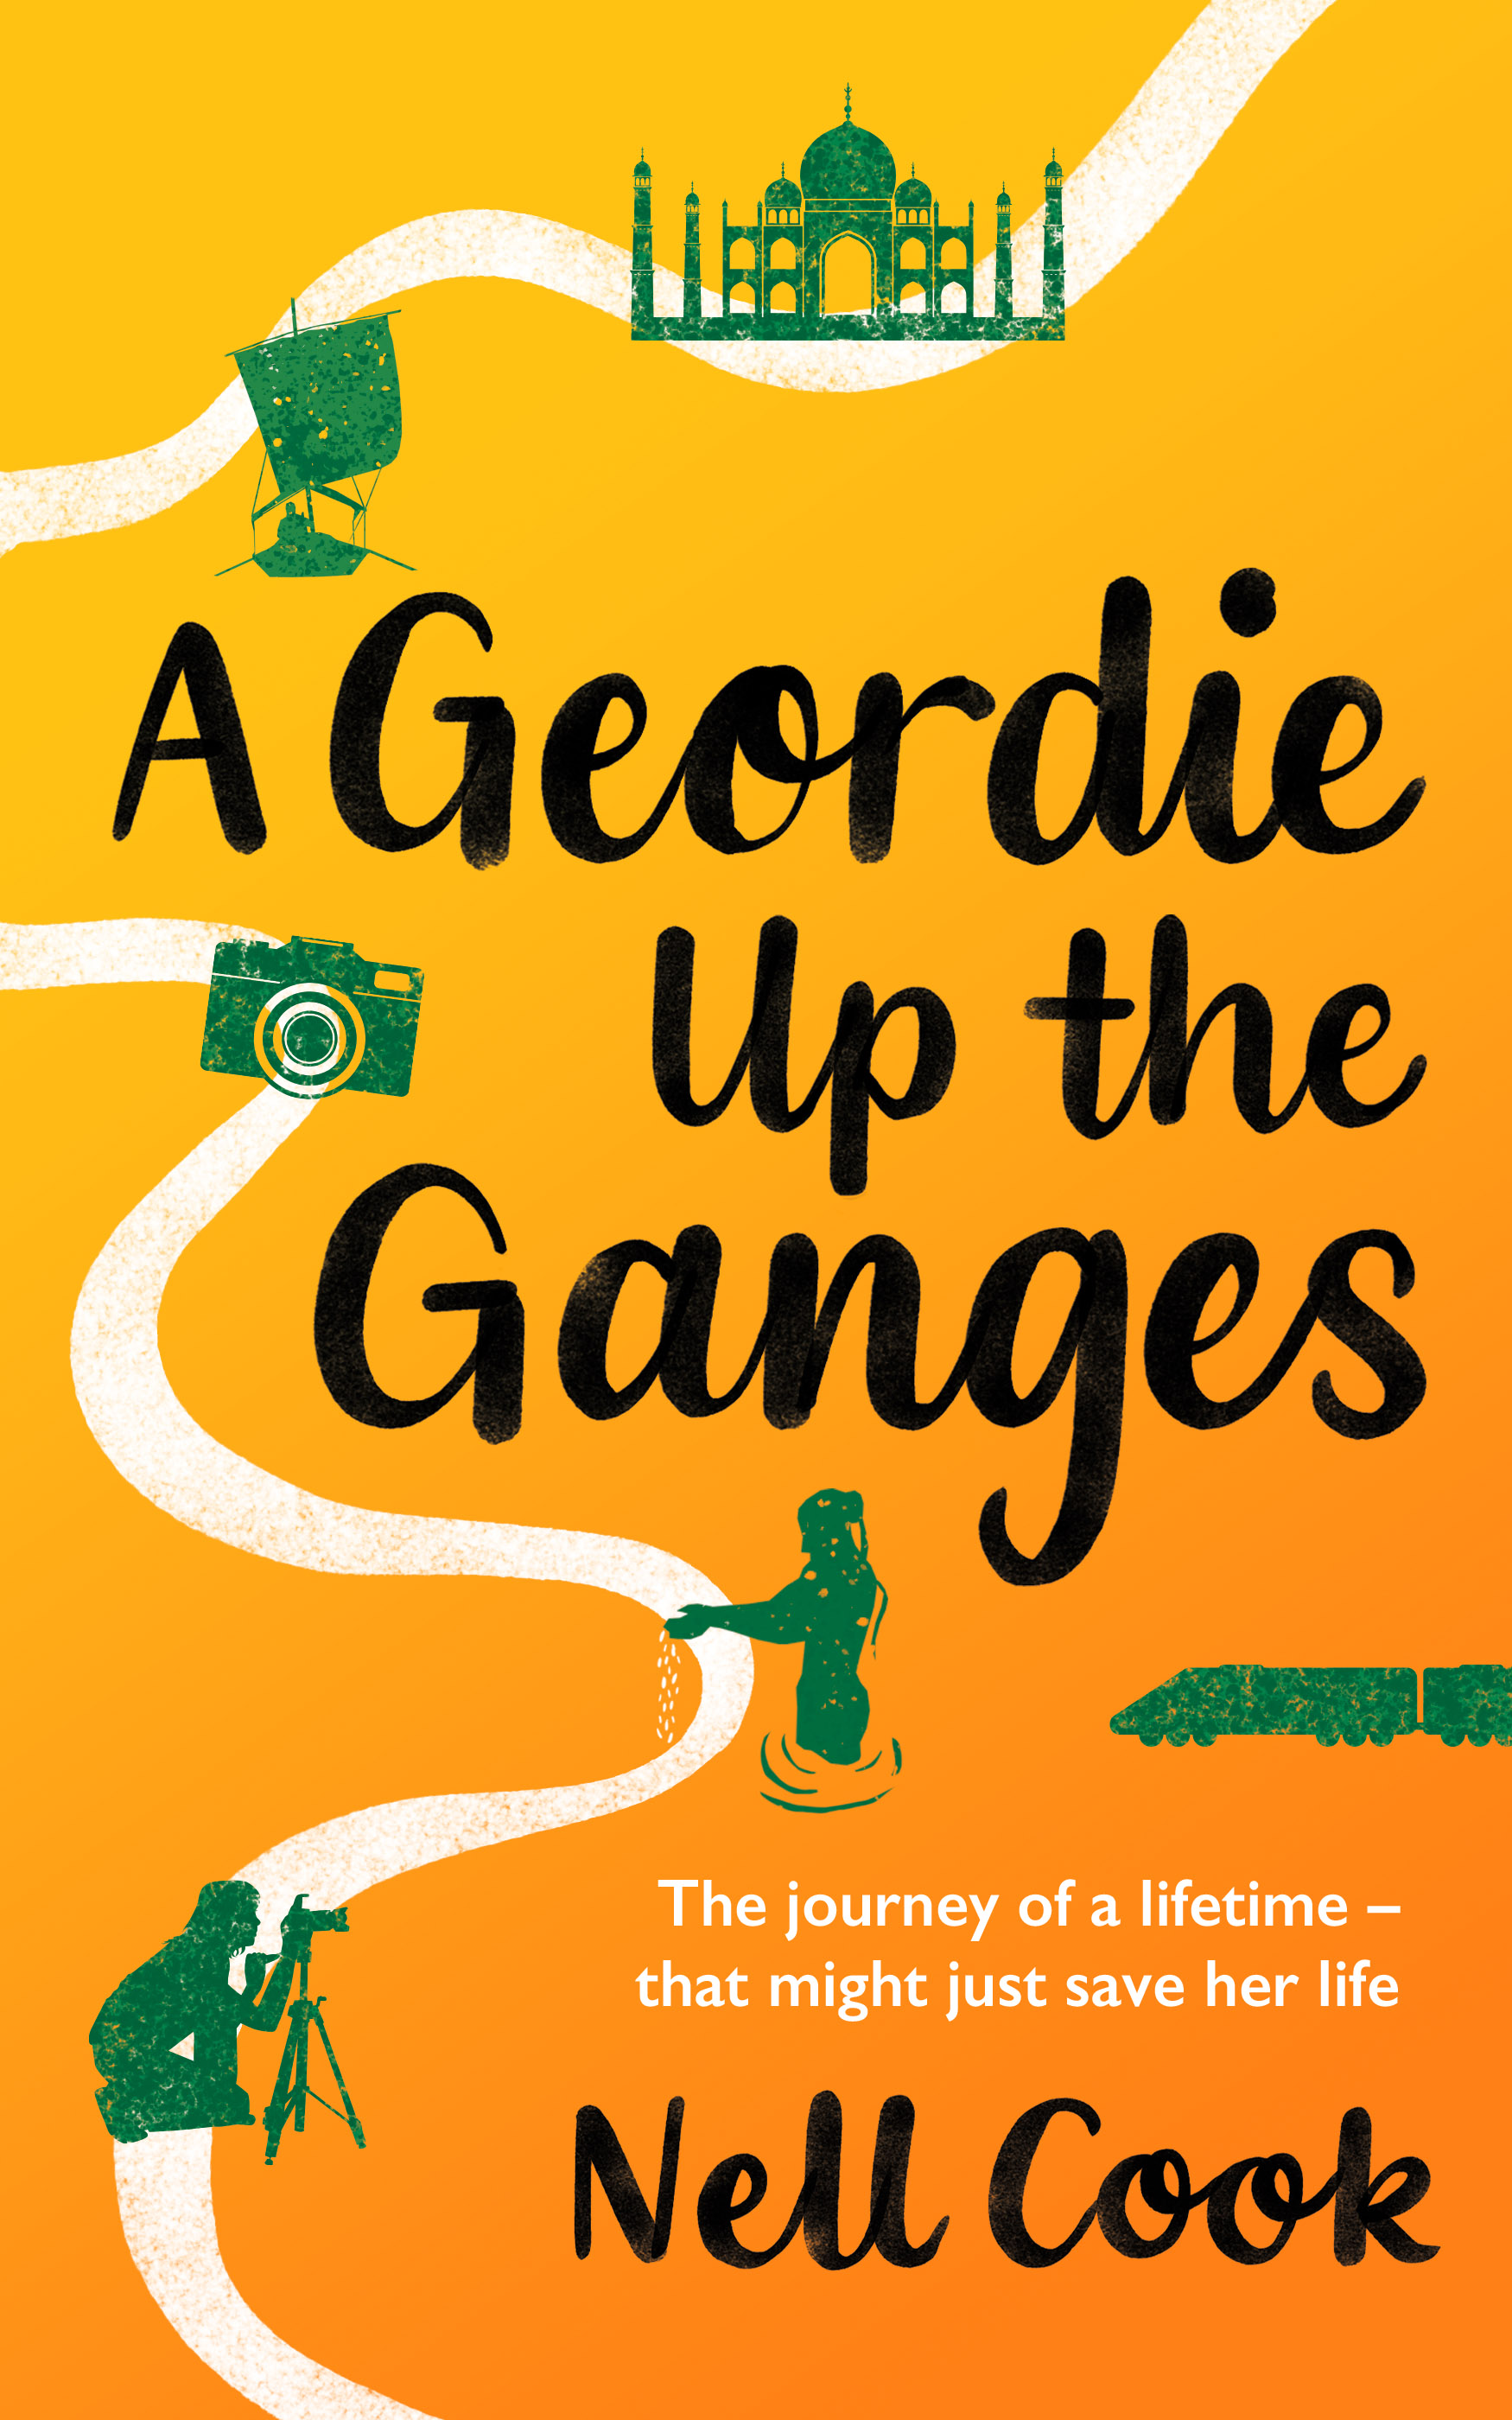 A Geordie Up The Ganges Ebook Cover.jpg